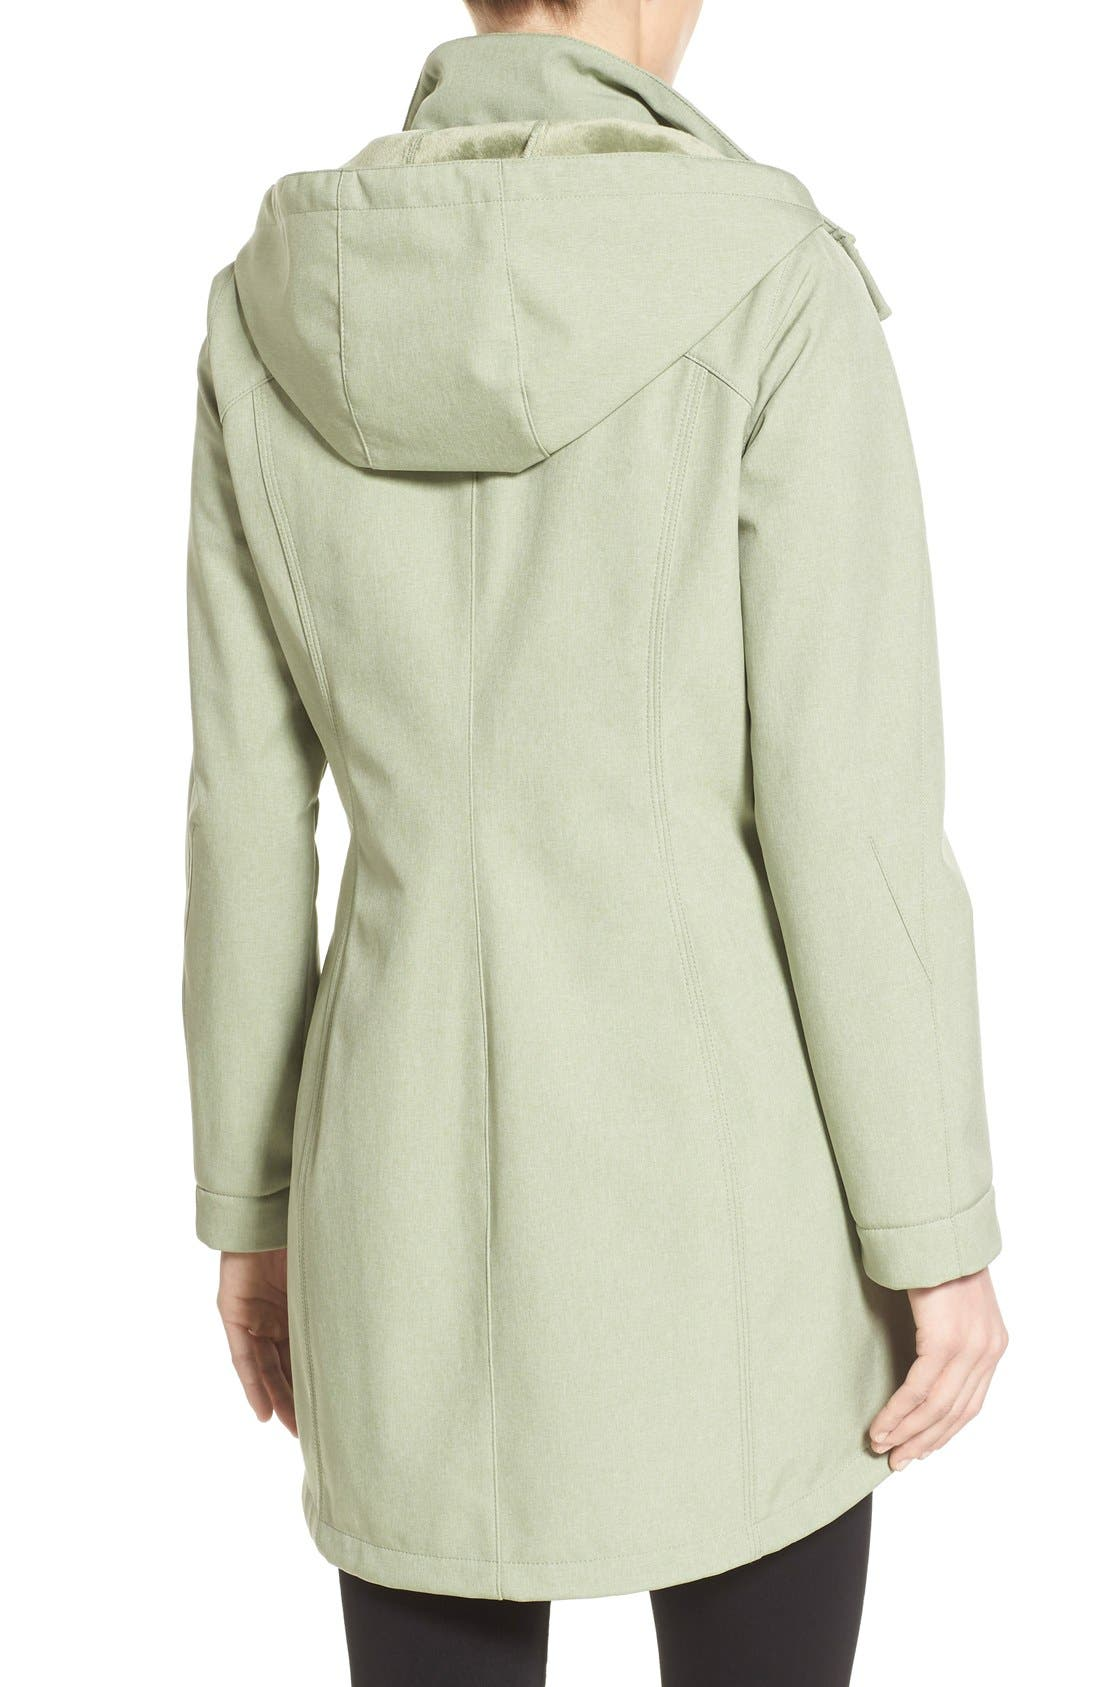 Alternate Image 2  - Kristen Blake Crossdye Hooded Soft Shell Jacket (Regular & Petite)